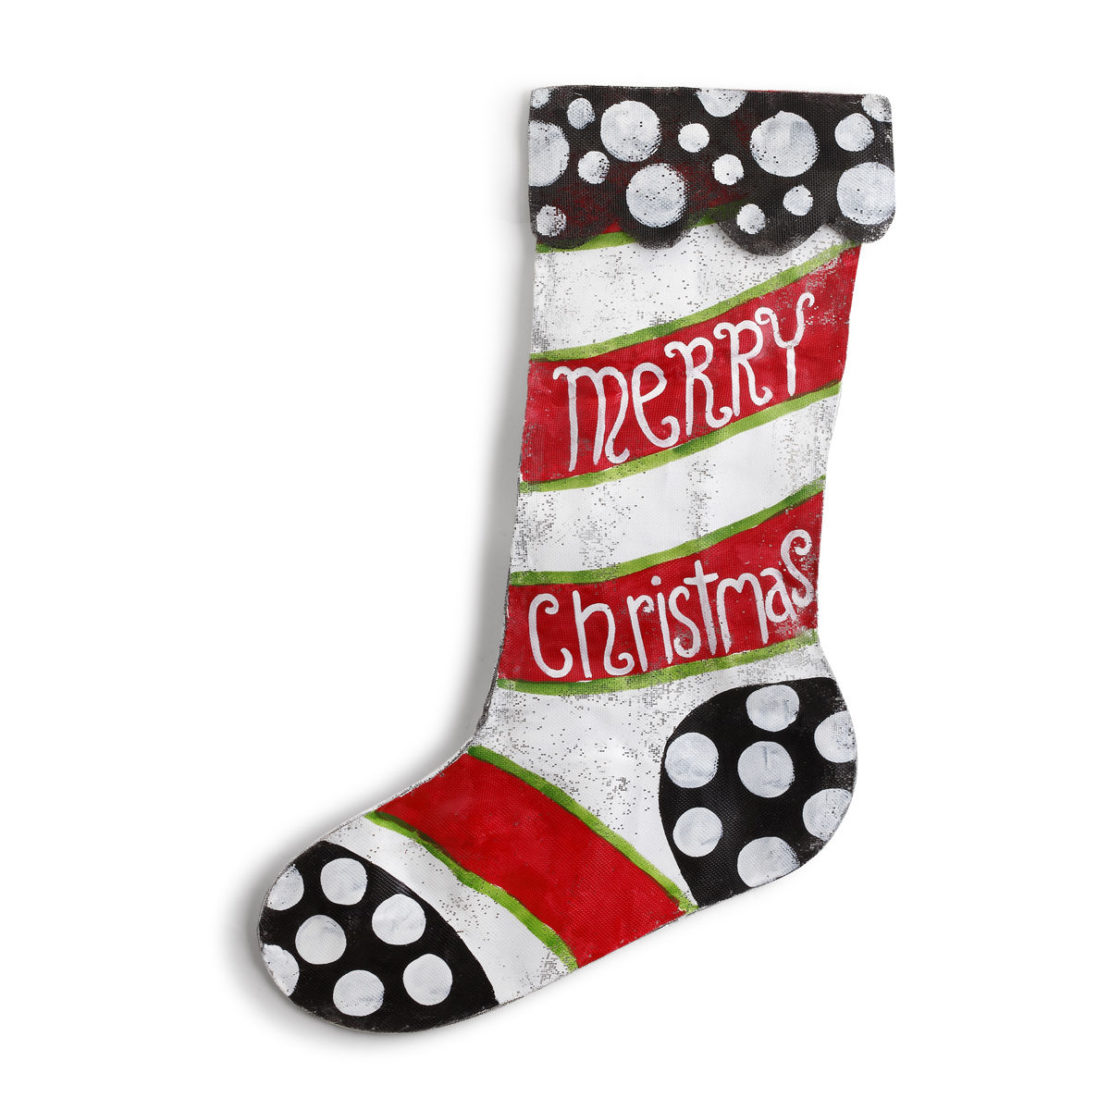 merry-christmas-stocking-door-hanger